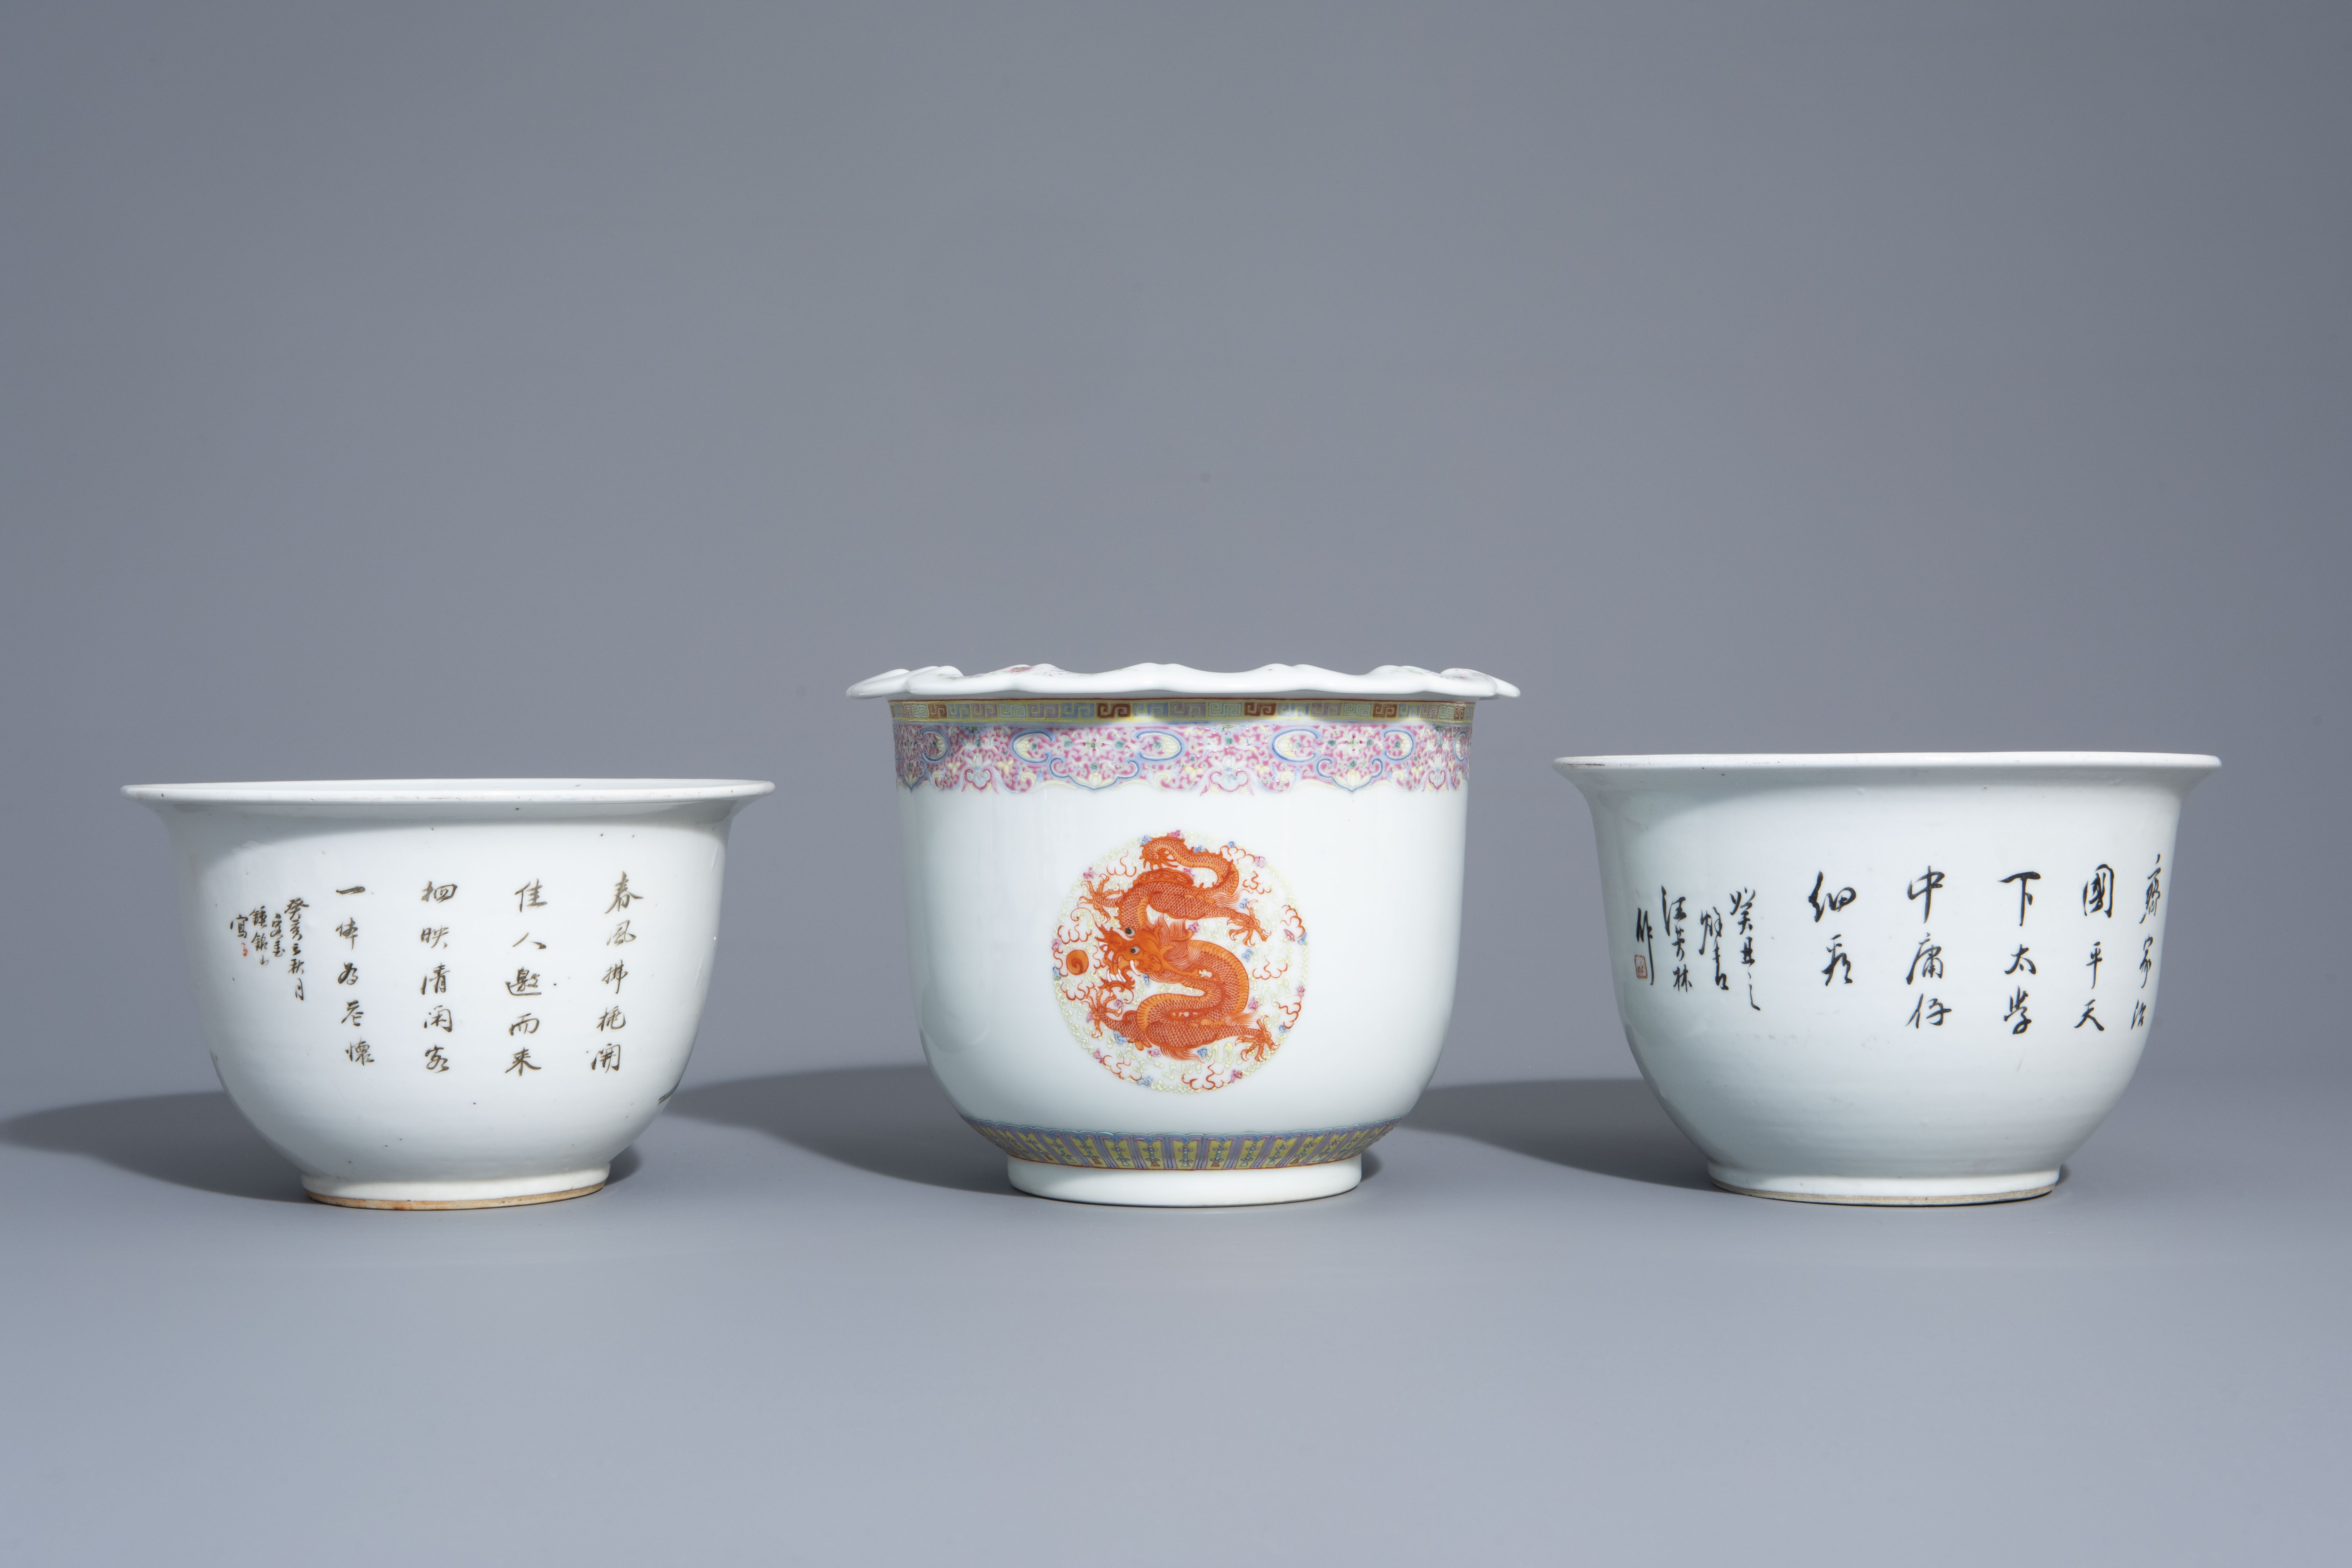 Three Chinese famille rose and qianjiang cai jardinires with different designs, 19th/20th C. - Image 4 of 7